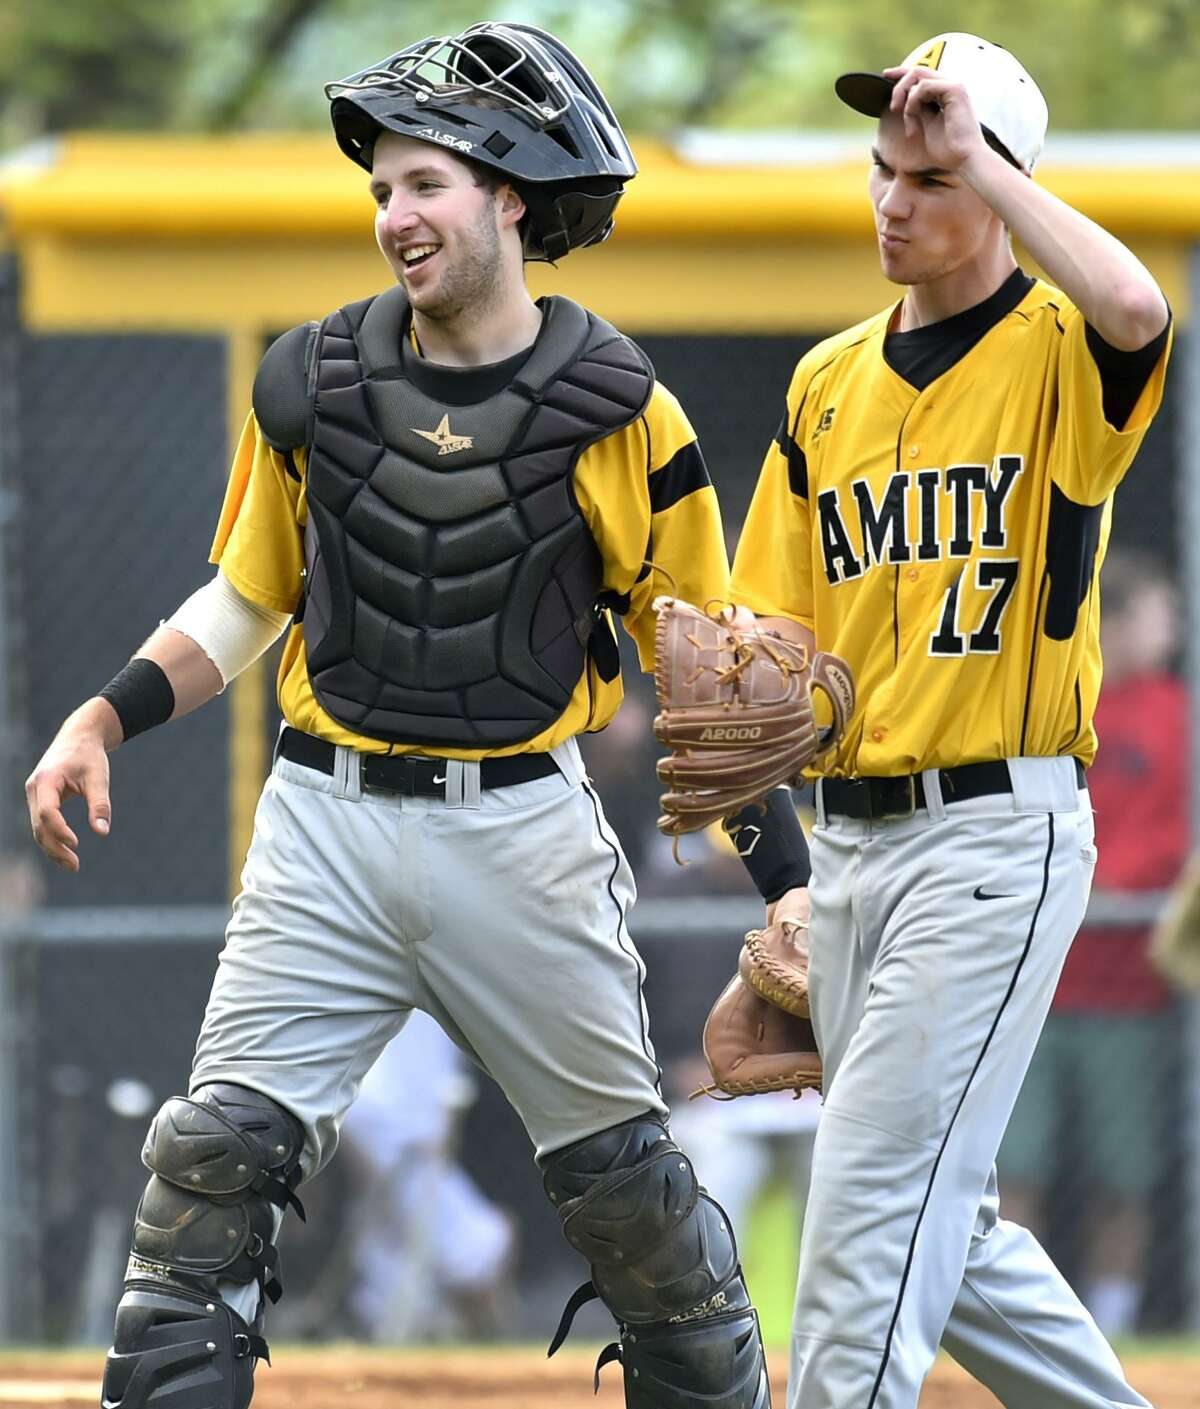 Amity's Pat Winkel, left, and pitcher Benjamin Lodewick head back to the dugout after retiring Hand at the end of fifth inning on Monday.